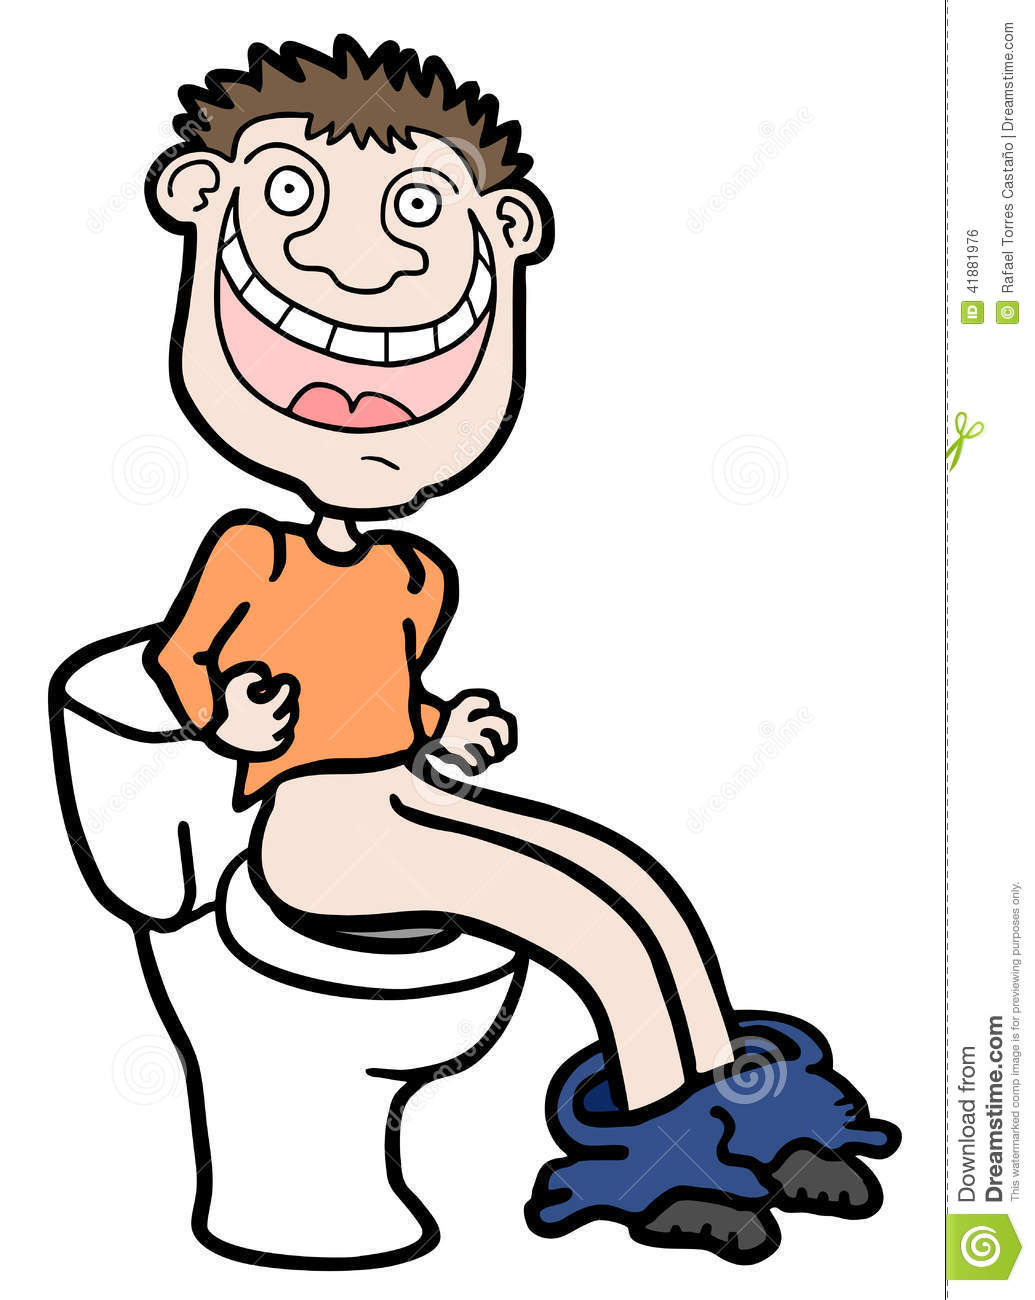 happy-man-toilet-funny-draw-41881976.jpg